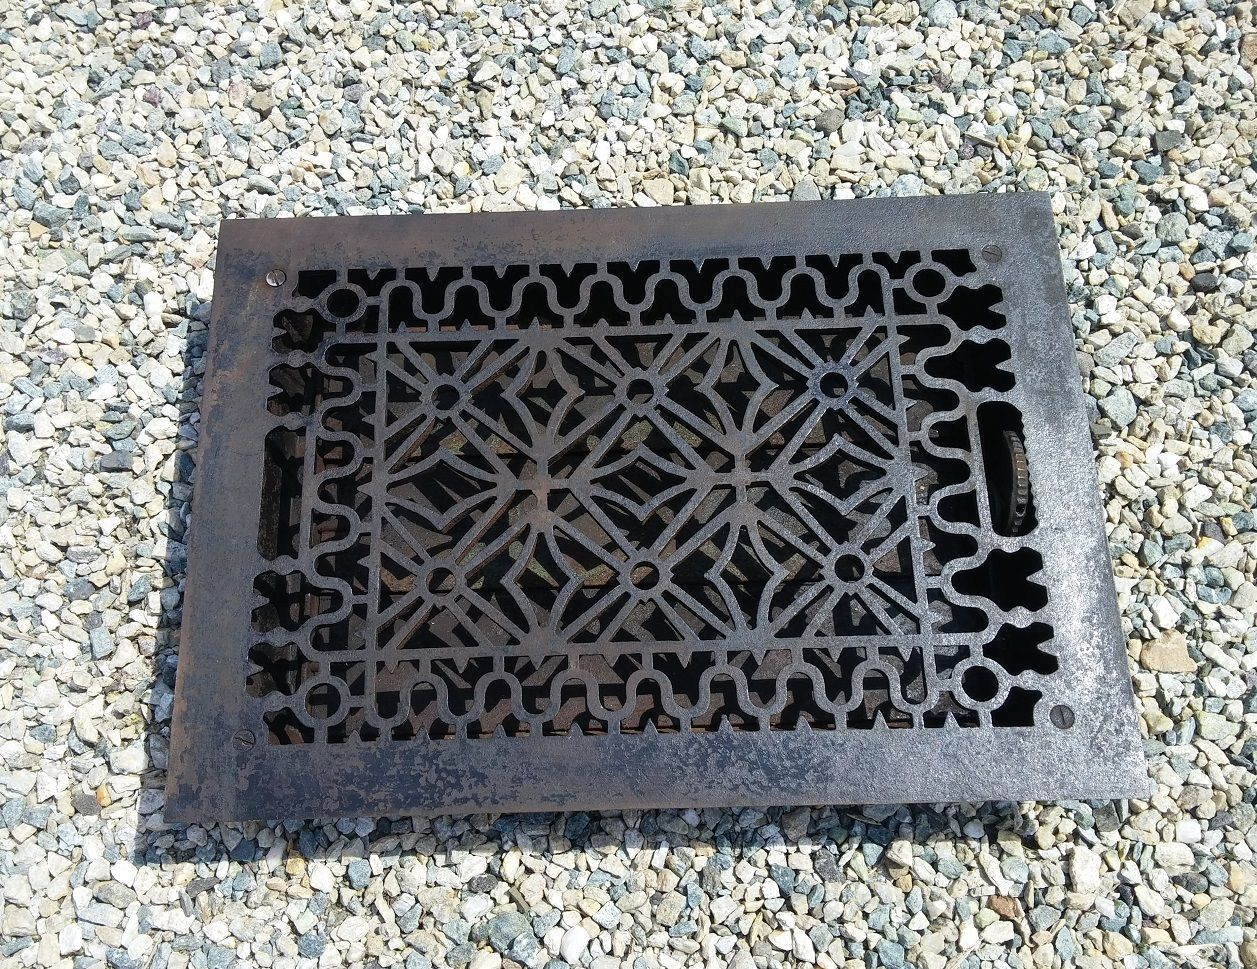 Antique Floor Grille Cast Iron Victorian 15x10 Louvers Grate Heat Register Decor Flooring Grates